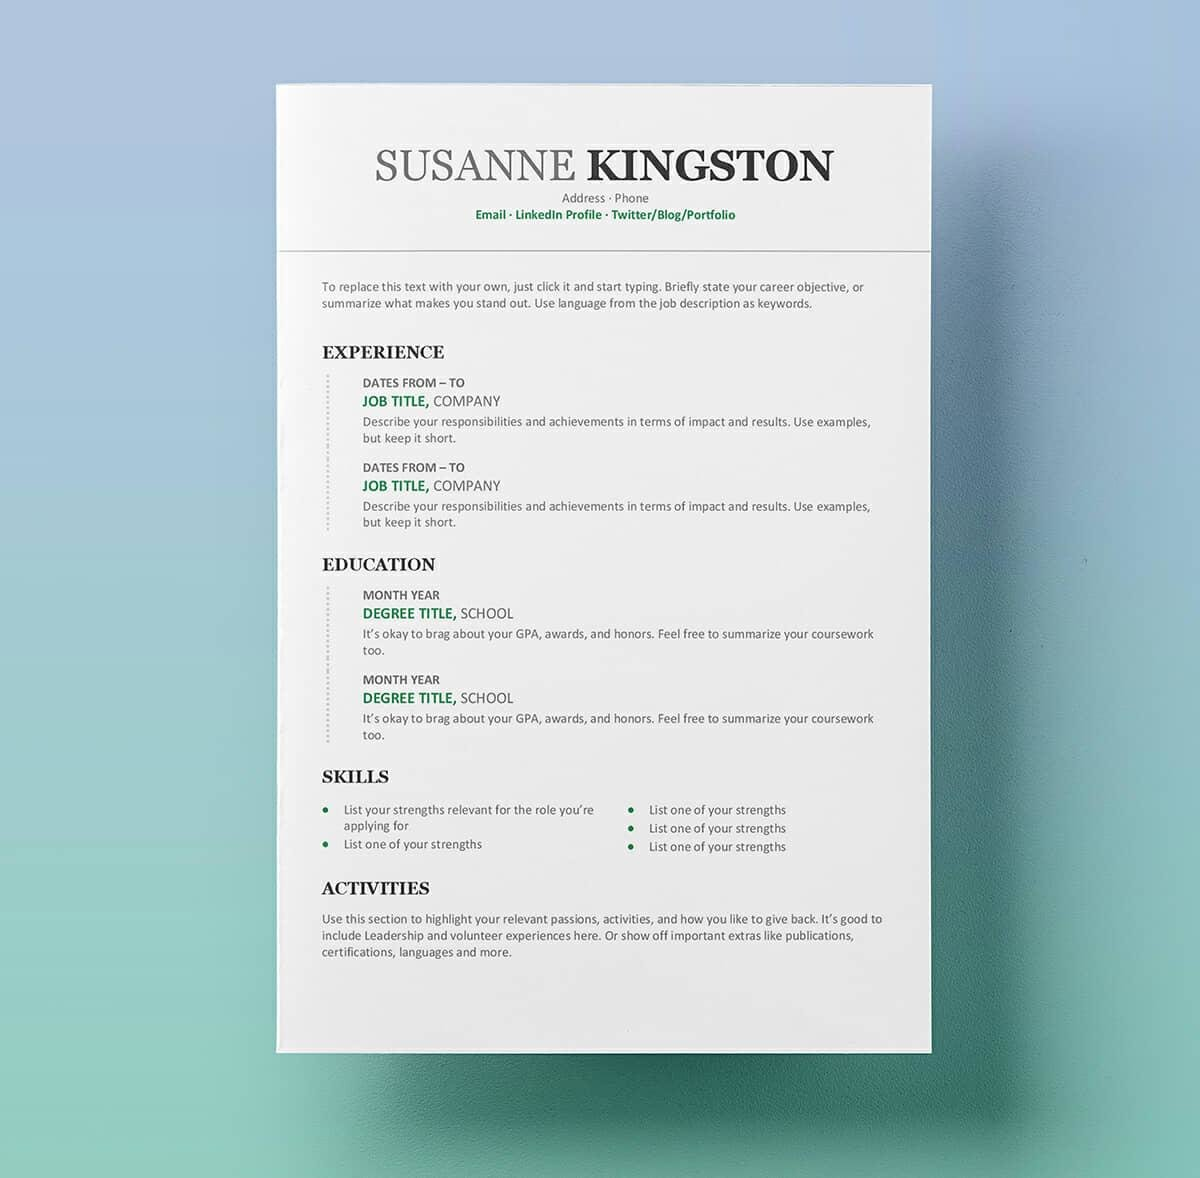 resume templates for microsoft word free standard template email sending financial Resume Standard Resume Template Word